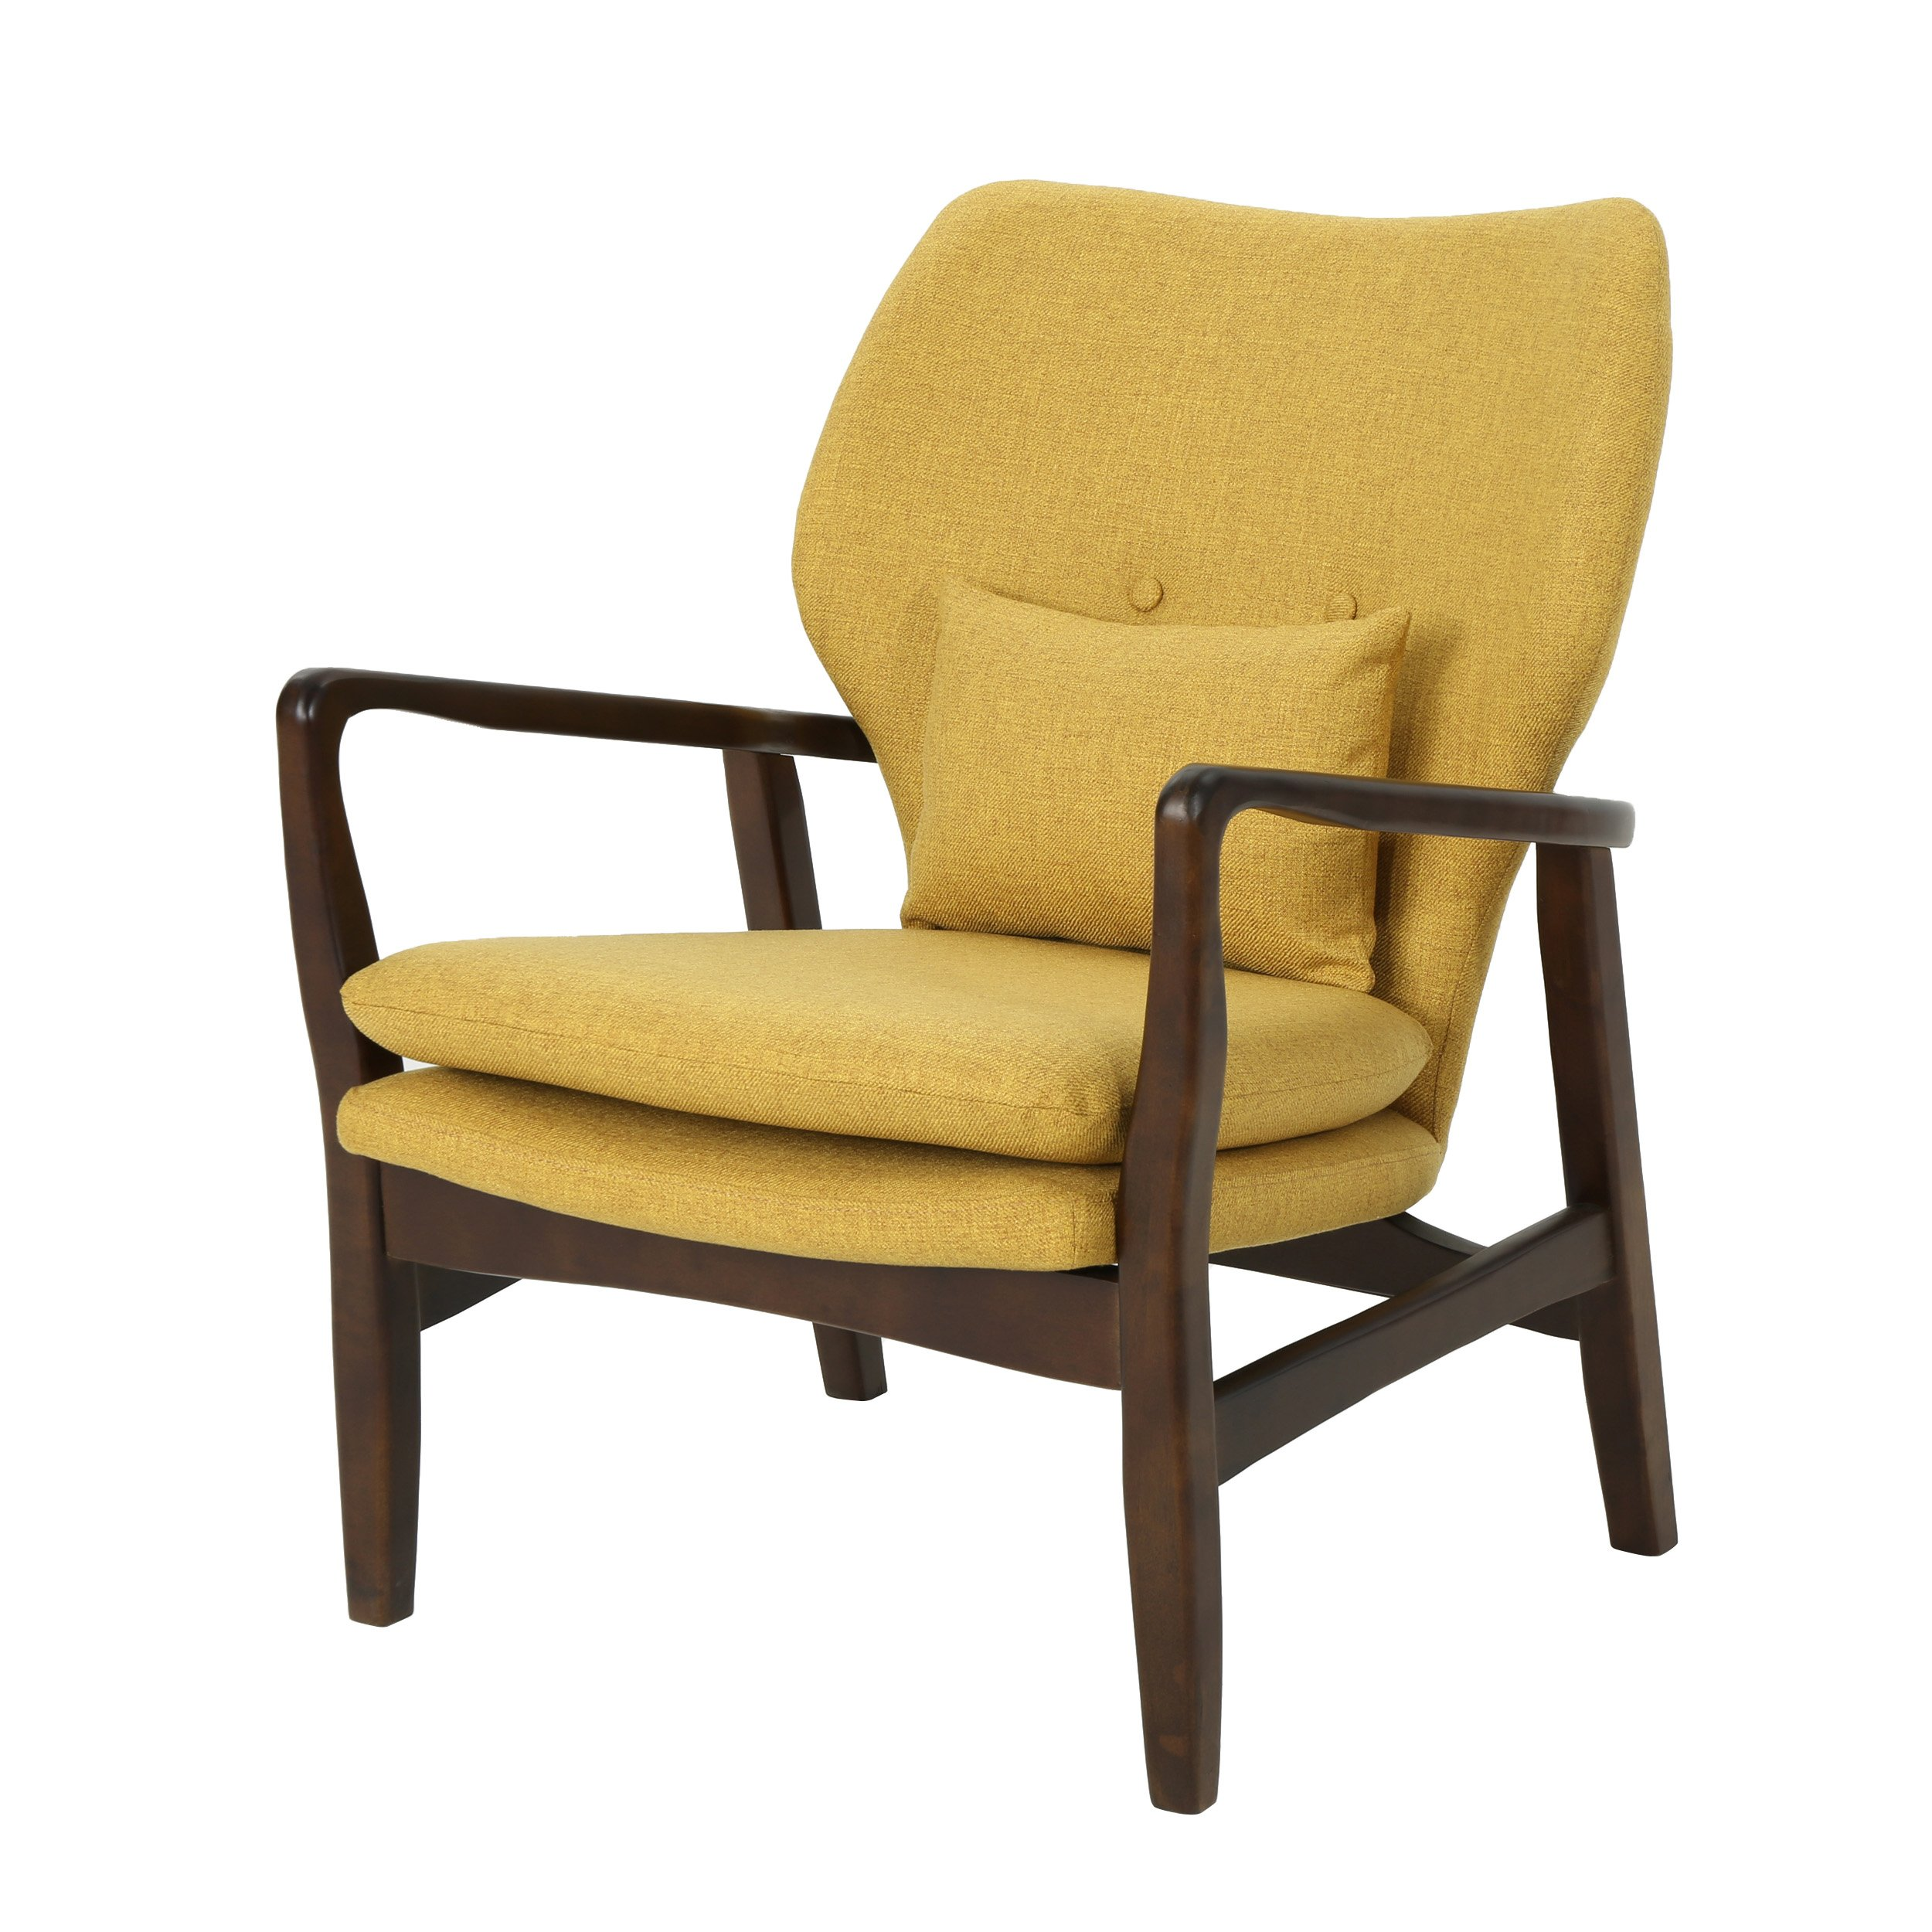 Christopher Knight Home Ventura Mid Century Modern Fabric Club Chair, Mustard by Christopher Knight Home